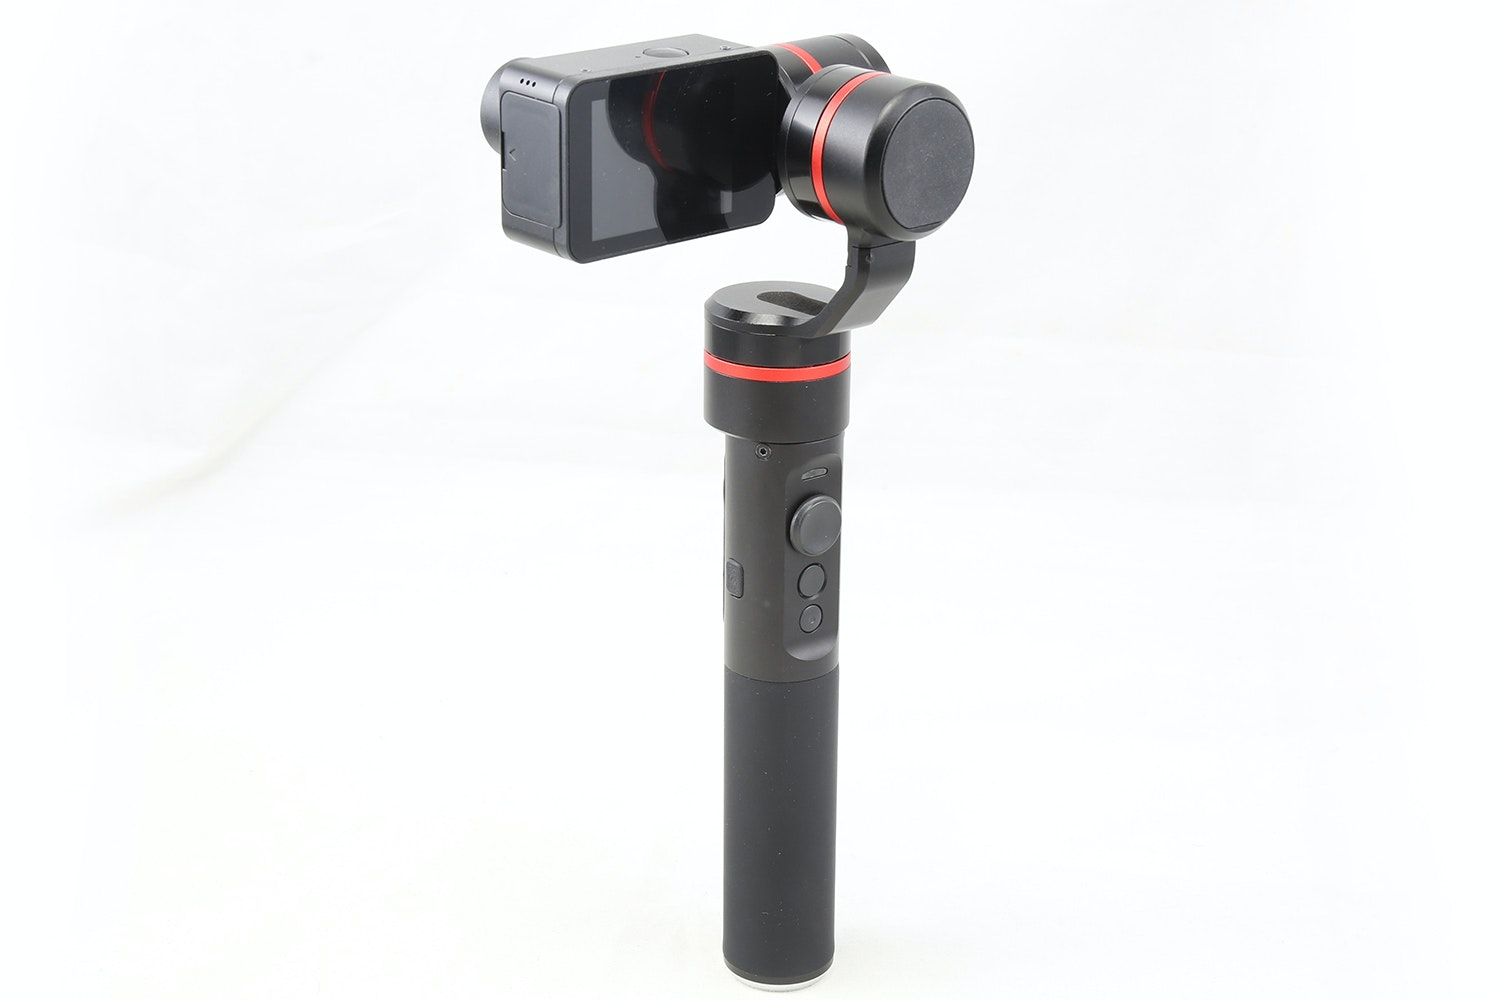 Feiyutech Summon Gimbal with built in Action Cam